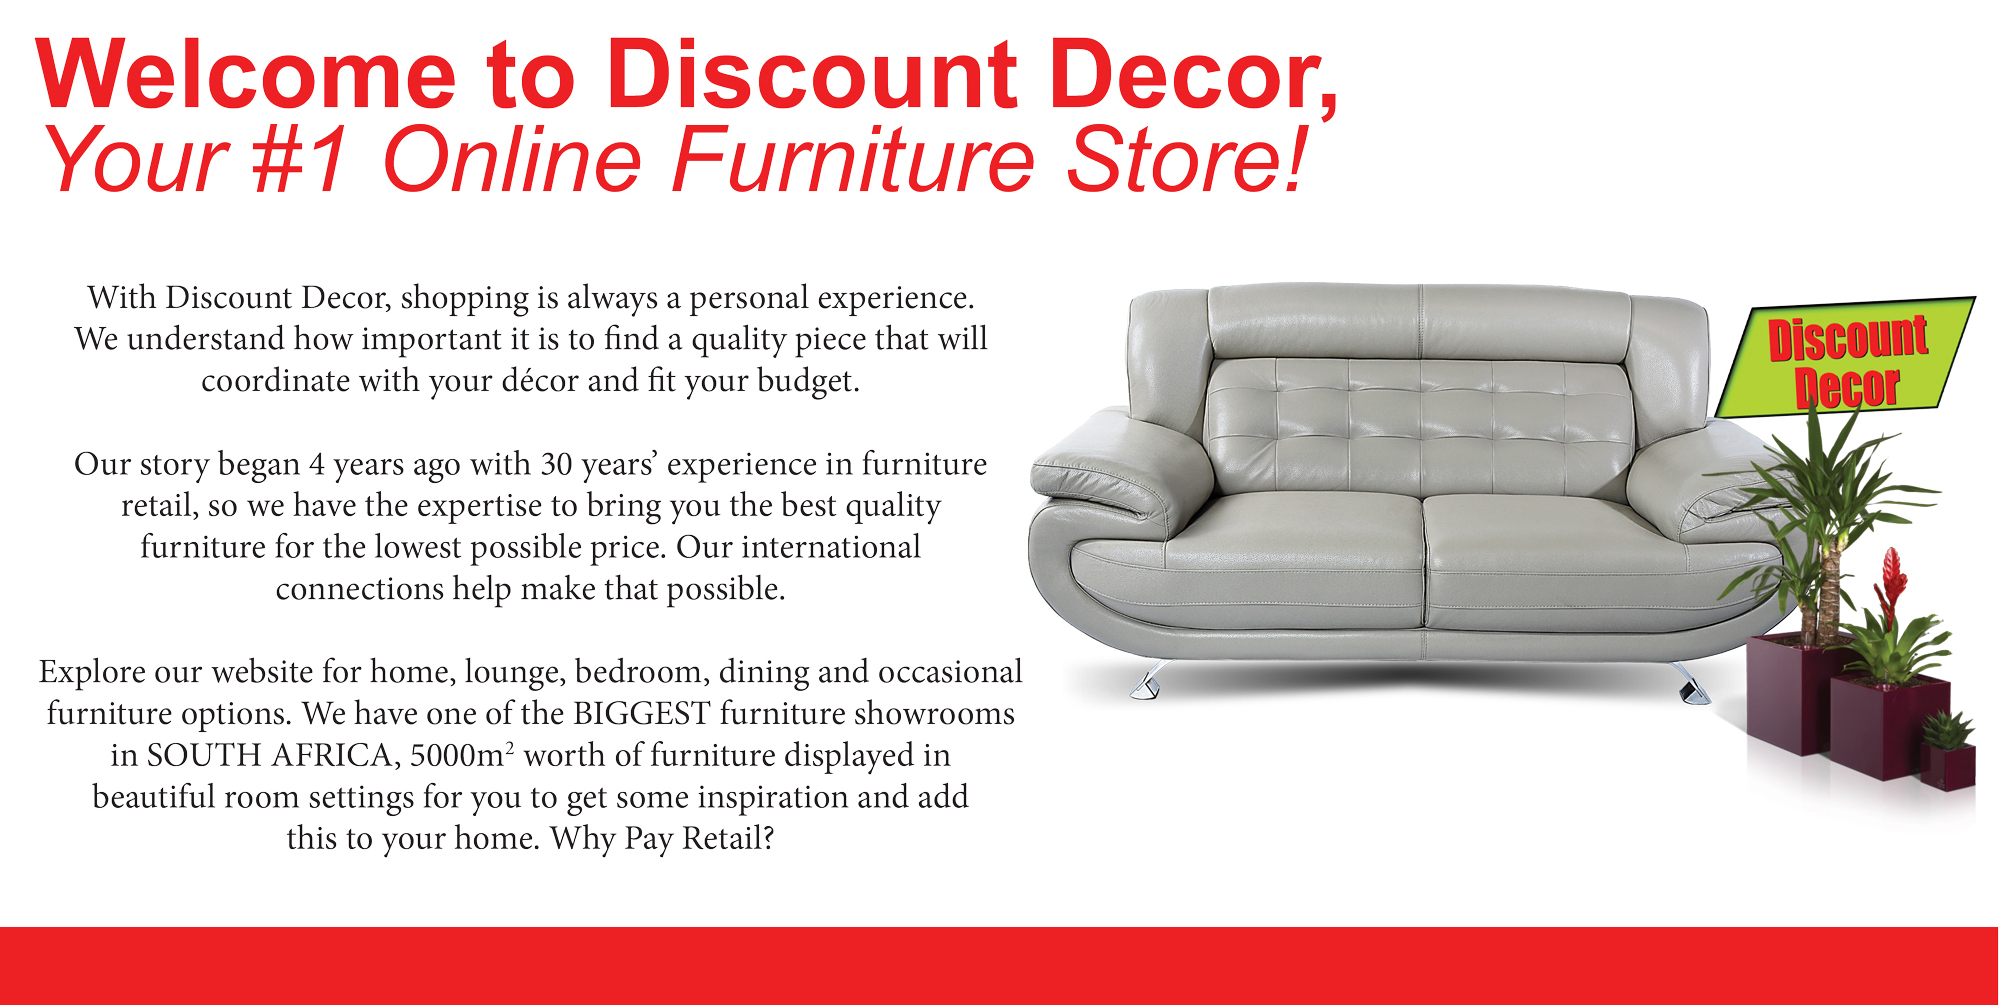 Discount-Decor-online-furniture-store-1-1